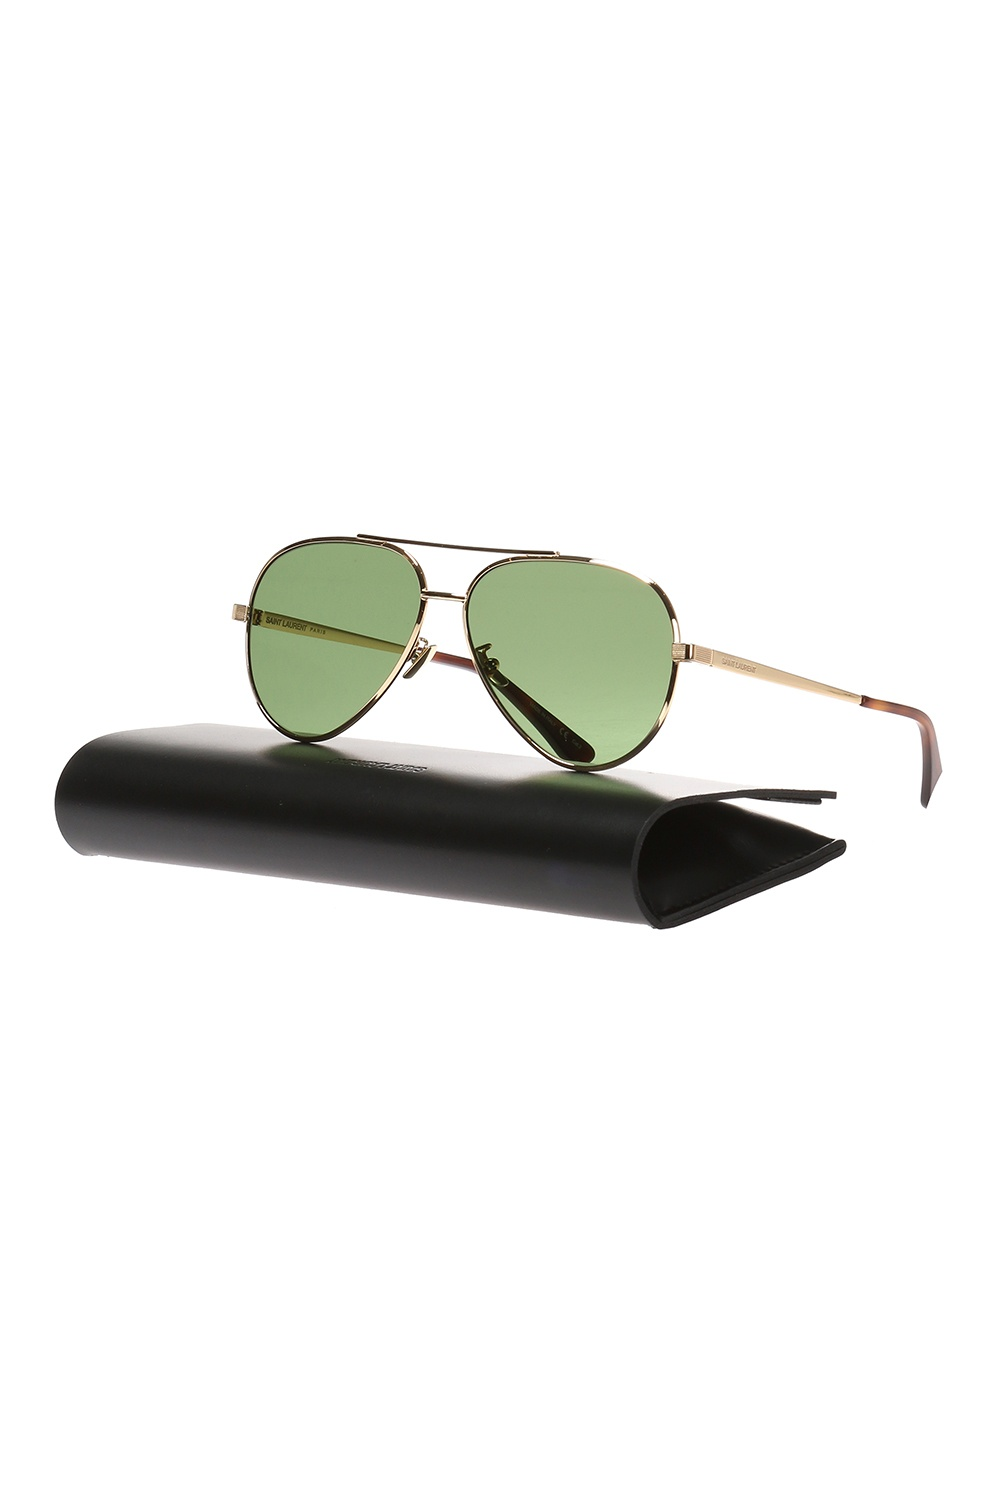 Saint Laurent 'AVIATOR' sunglasses